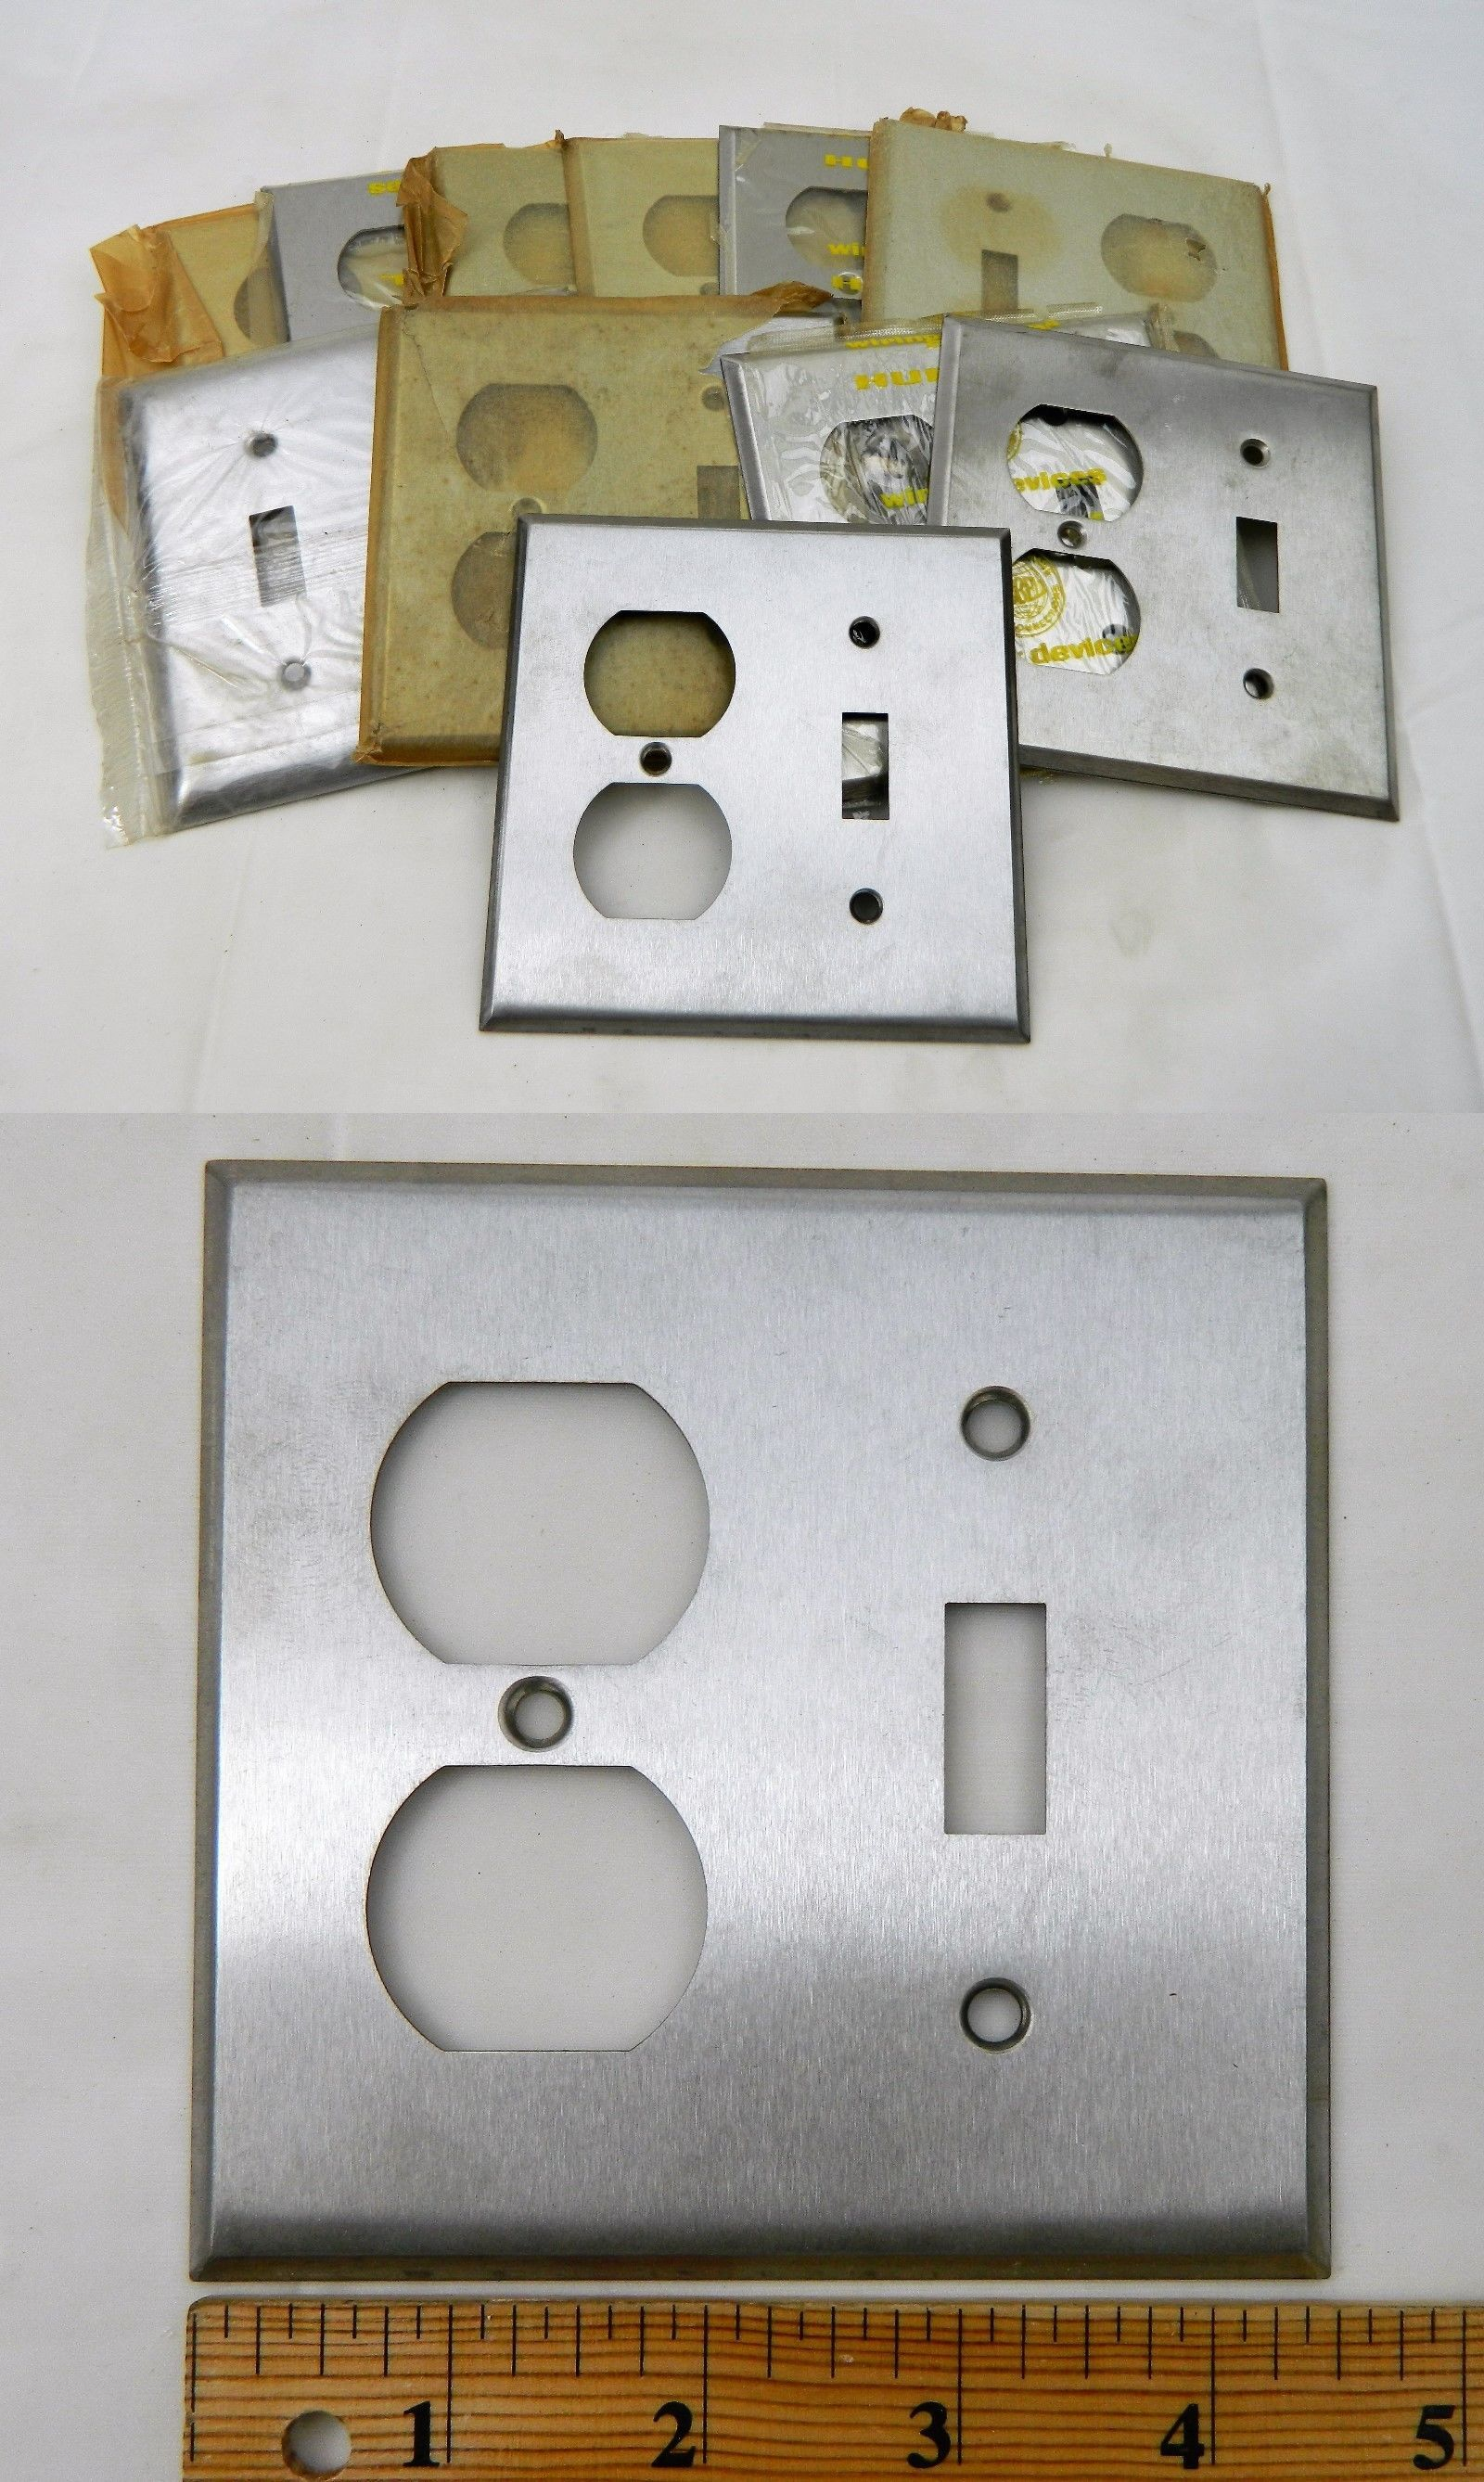 Stainless Steel Outlet Covers Switch Plates And Outlet Covers 43412 10 Metal Stainless Steel 2